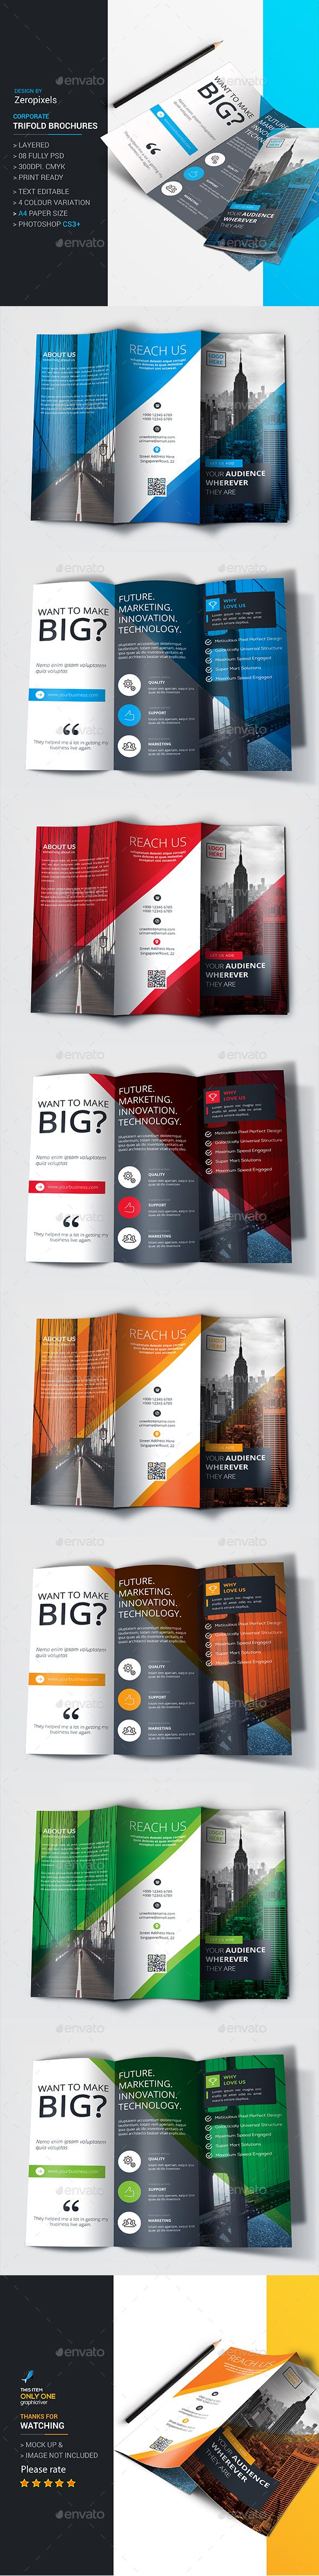 Trifold Brochure Template PSD. Download here: http://graphicriver ...